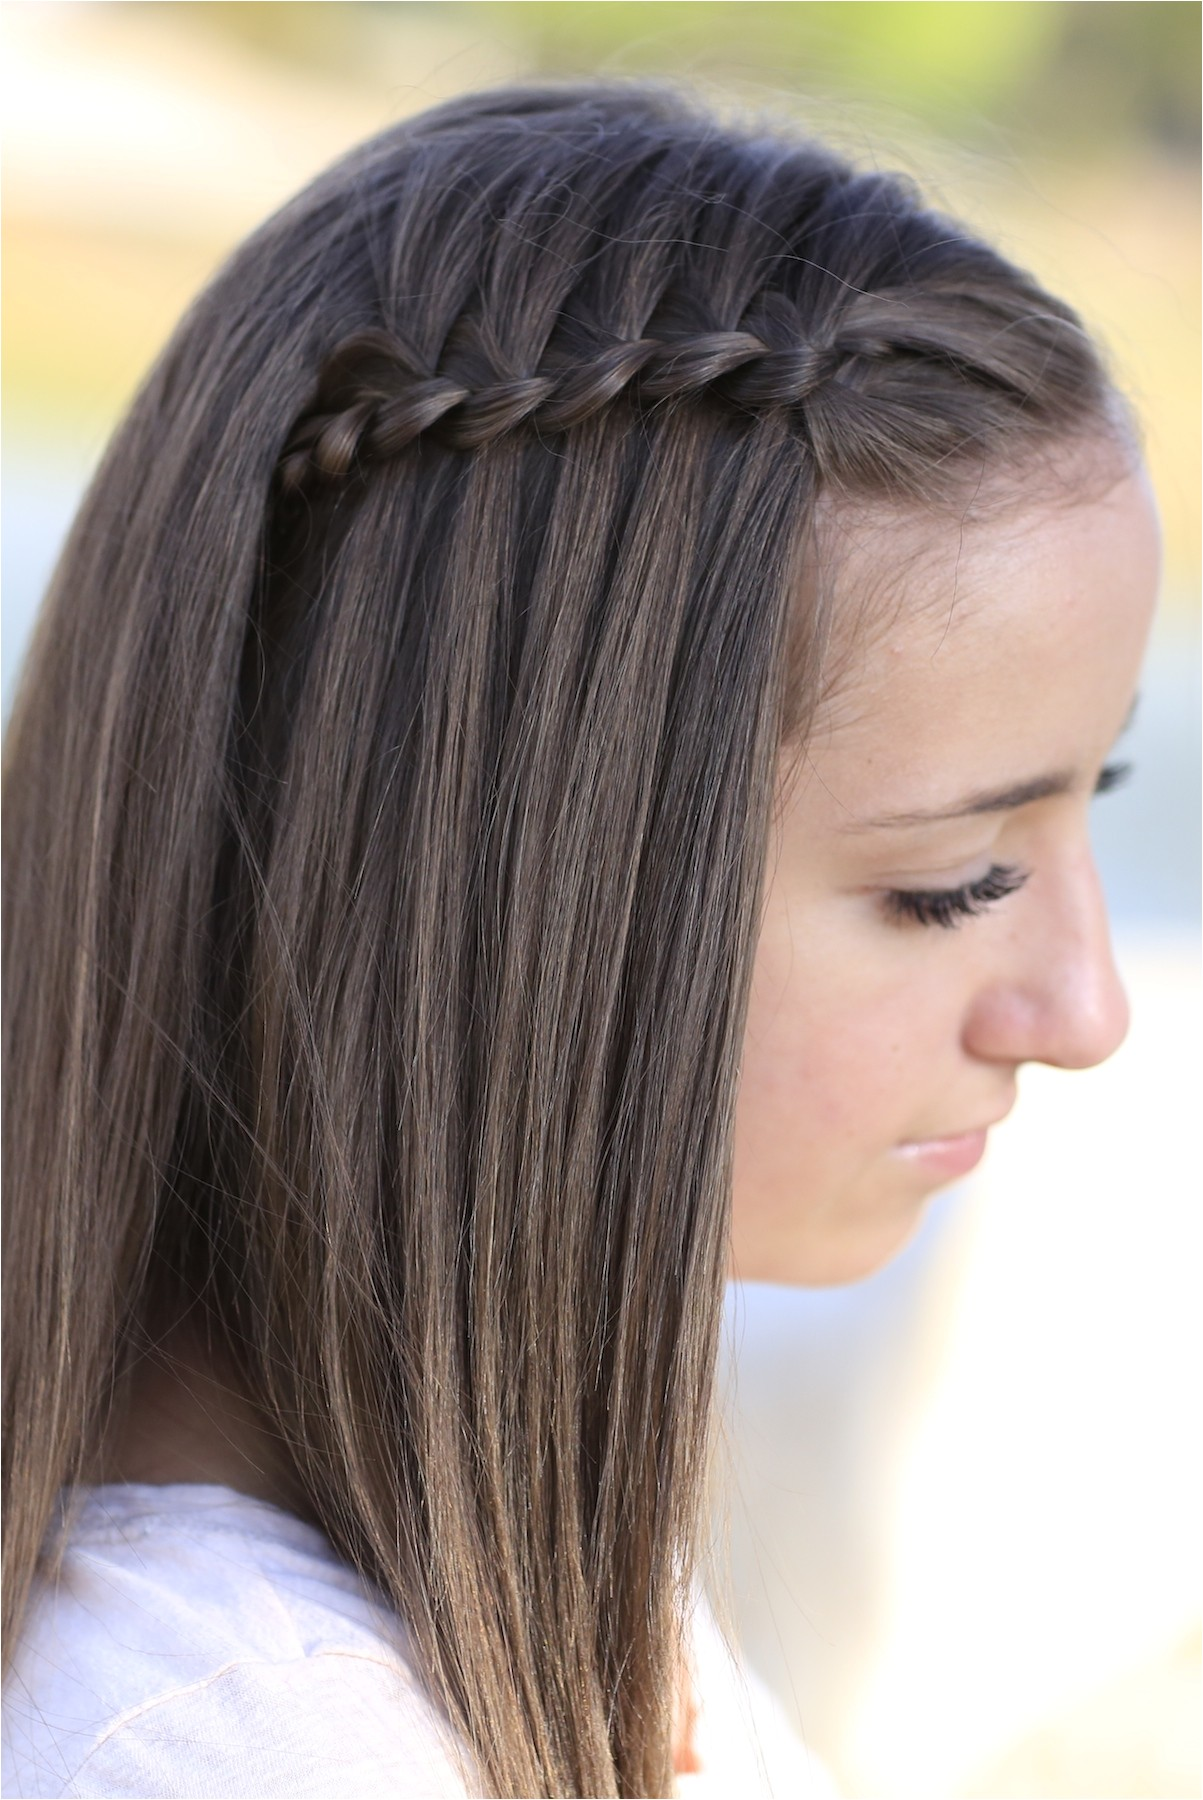 ideas for hairstyles for 12 year old girls